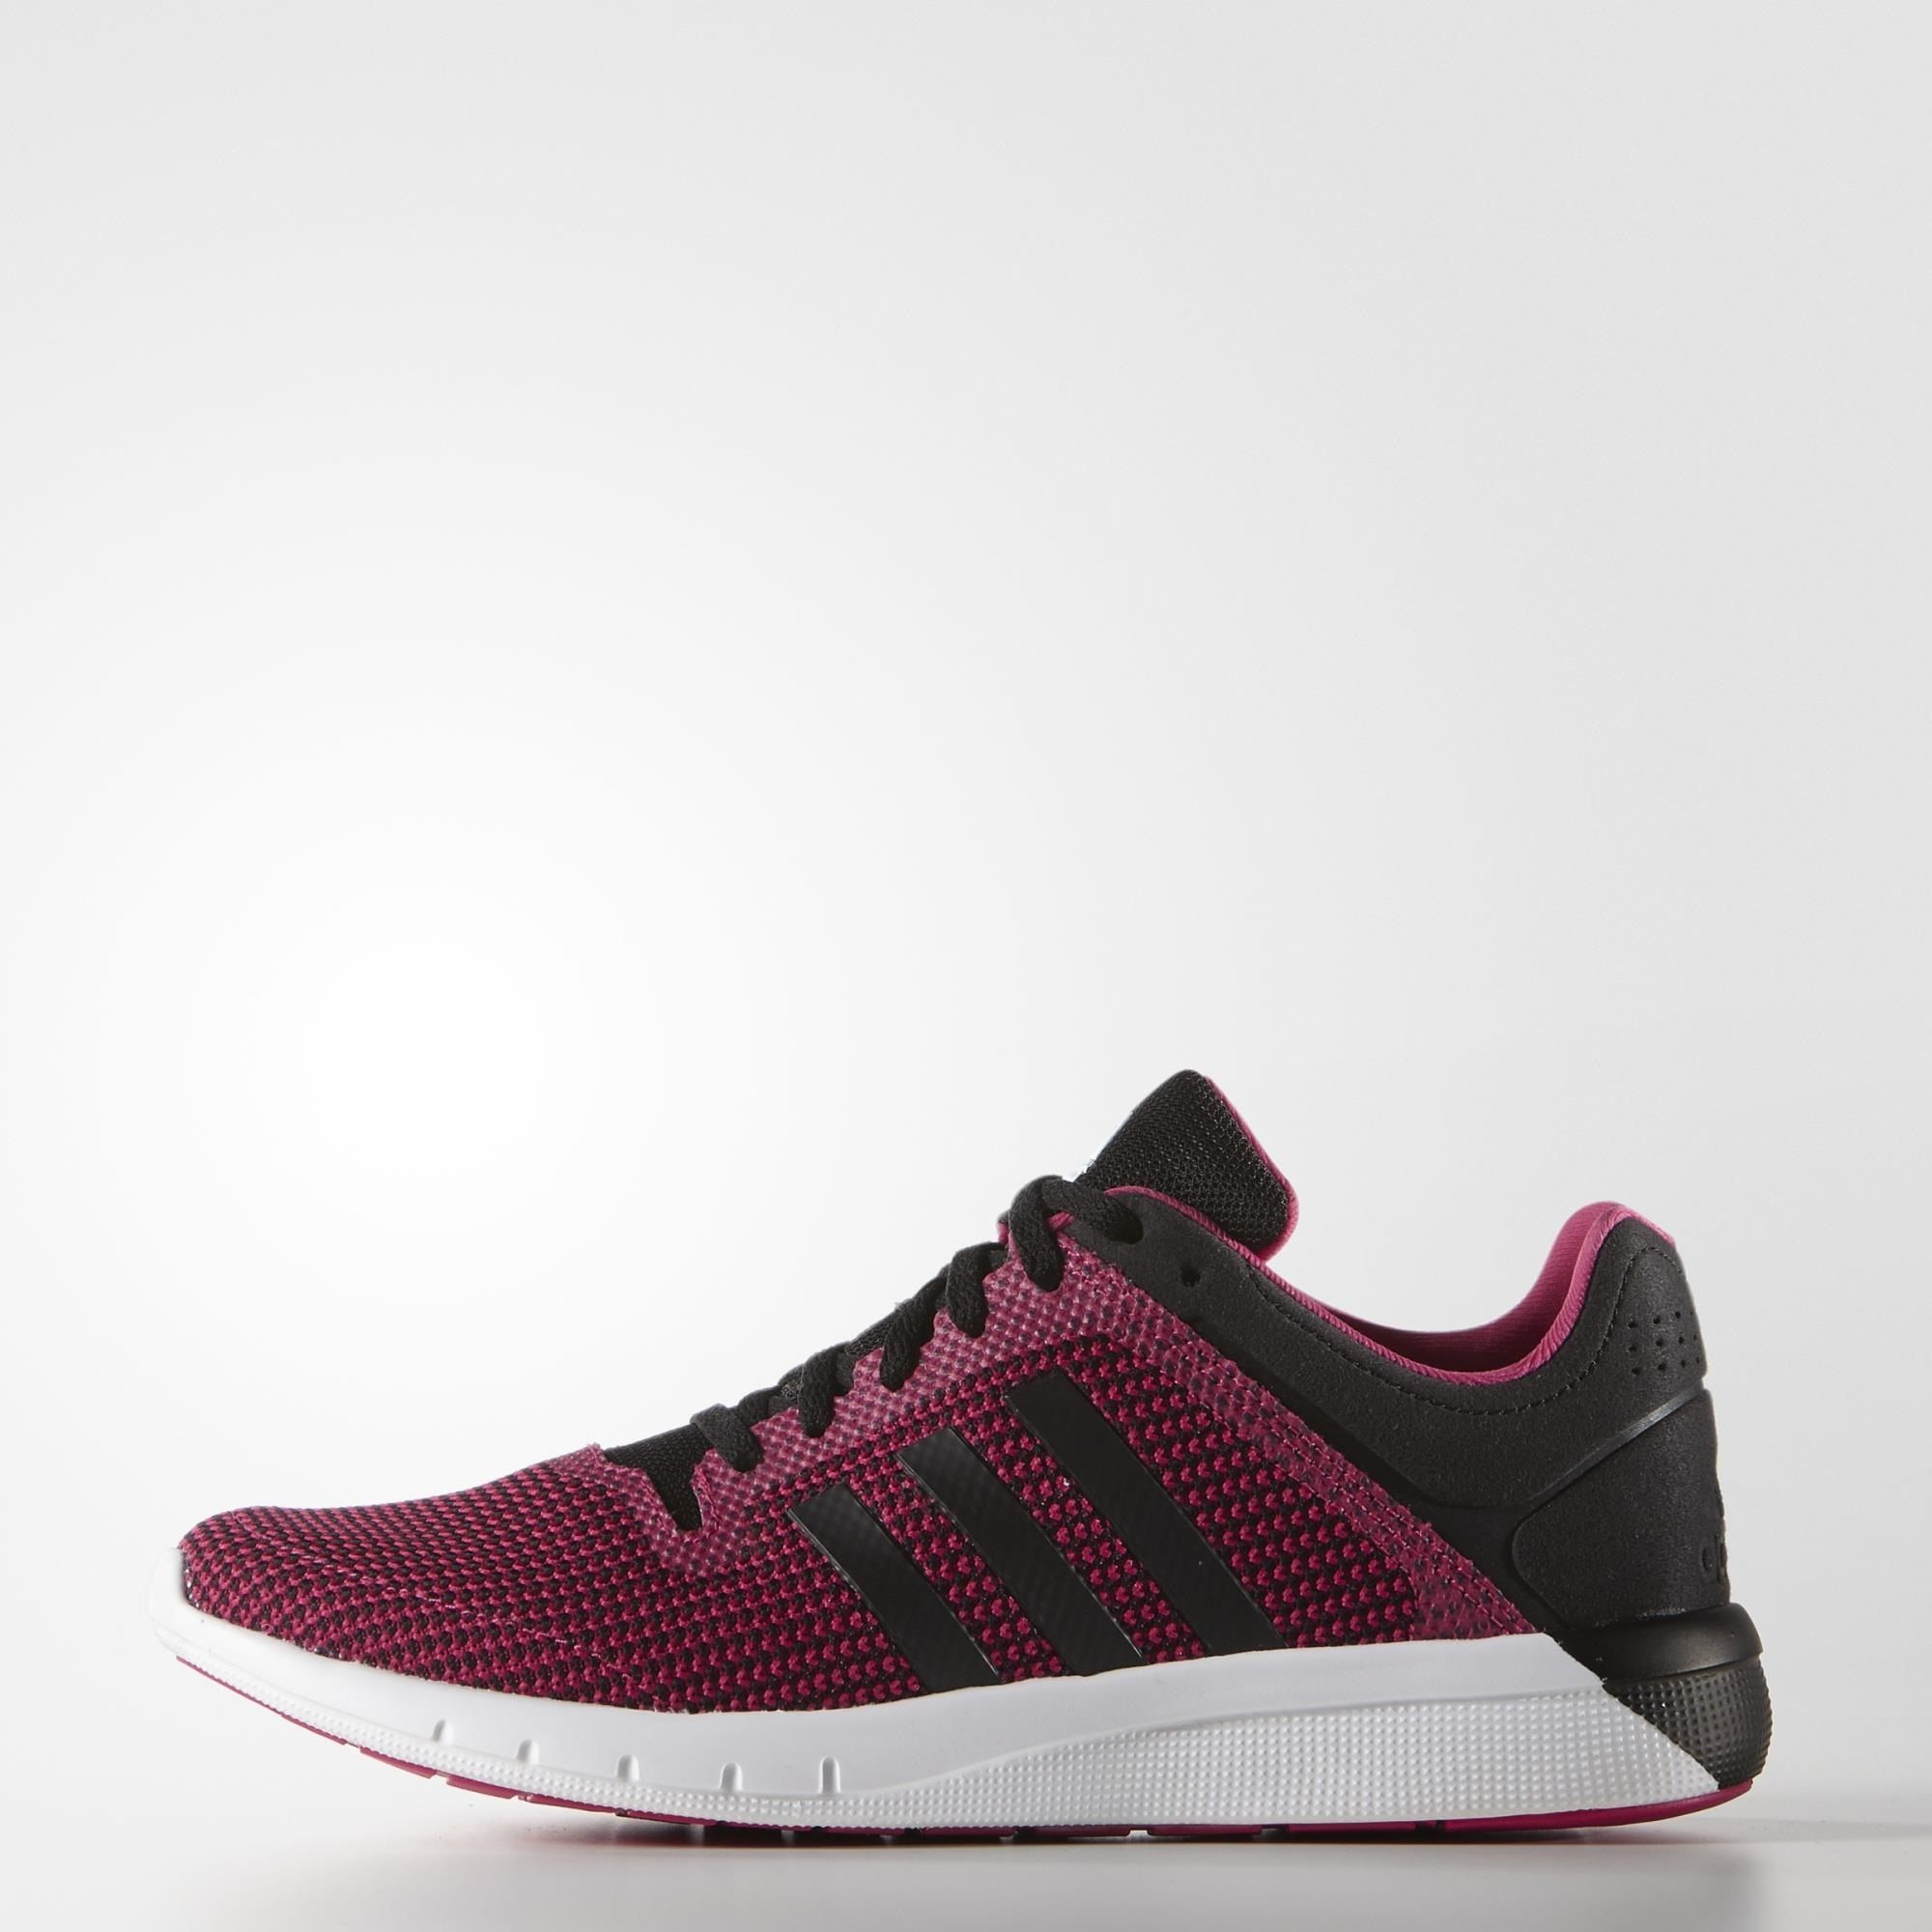 adidas climacool fresh womens running shoes pink